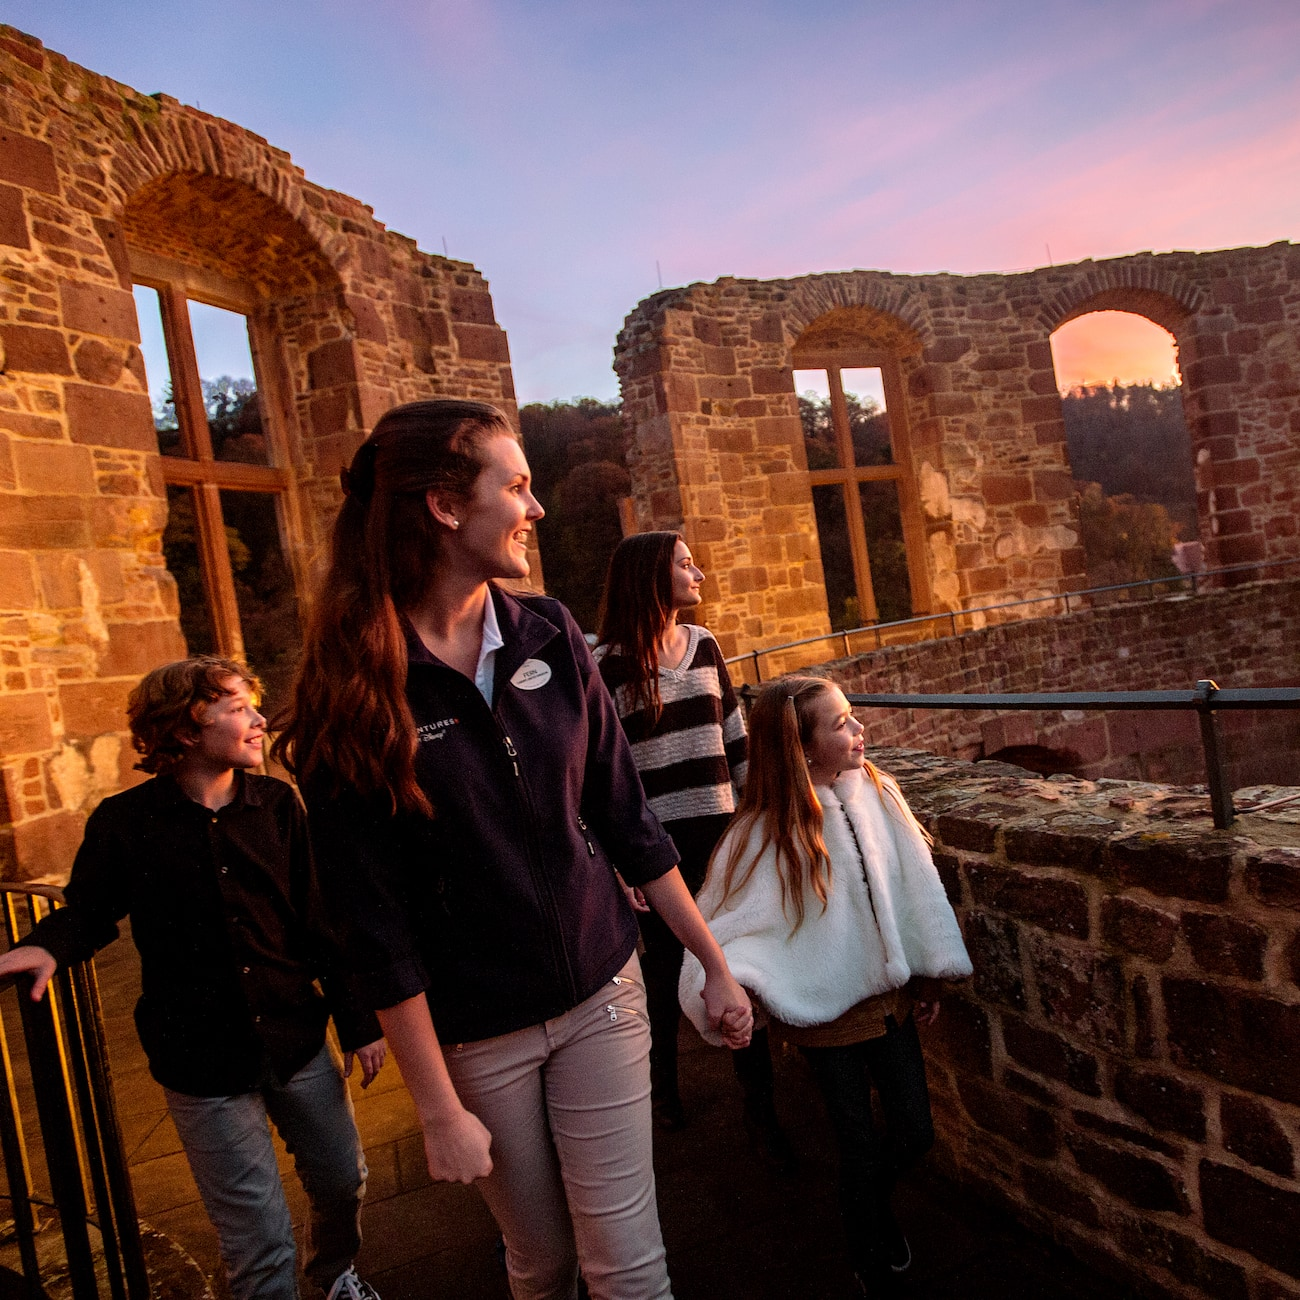 A female Adventure Guide leads a group of 3 people through the windows of the remains of a stone structure at dusk